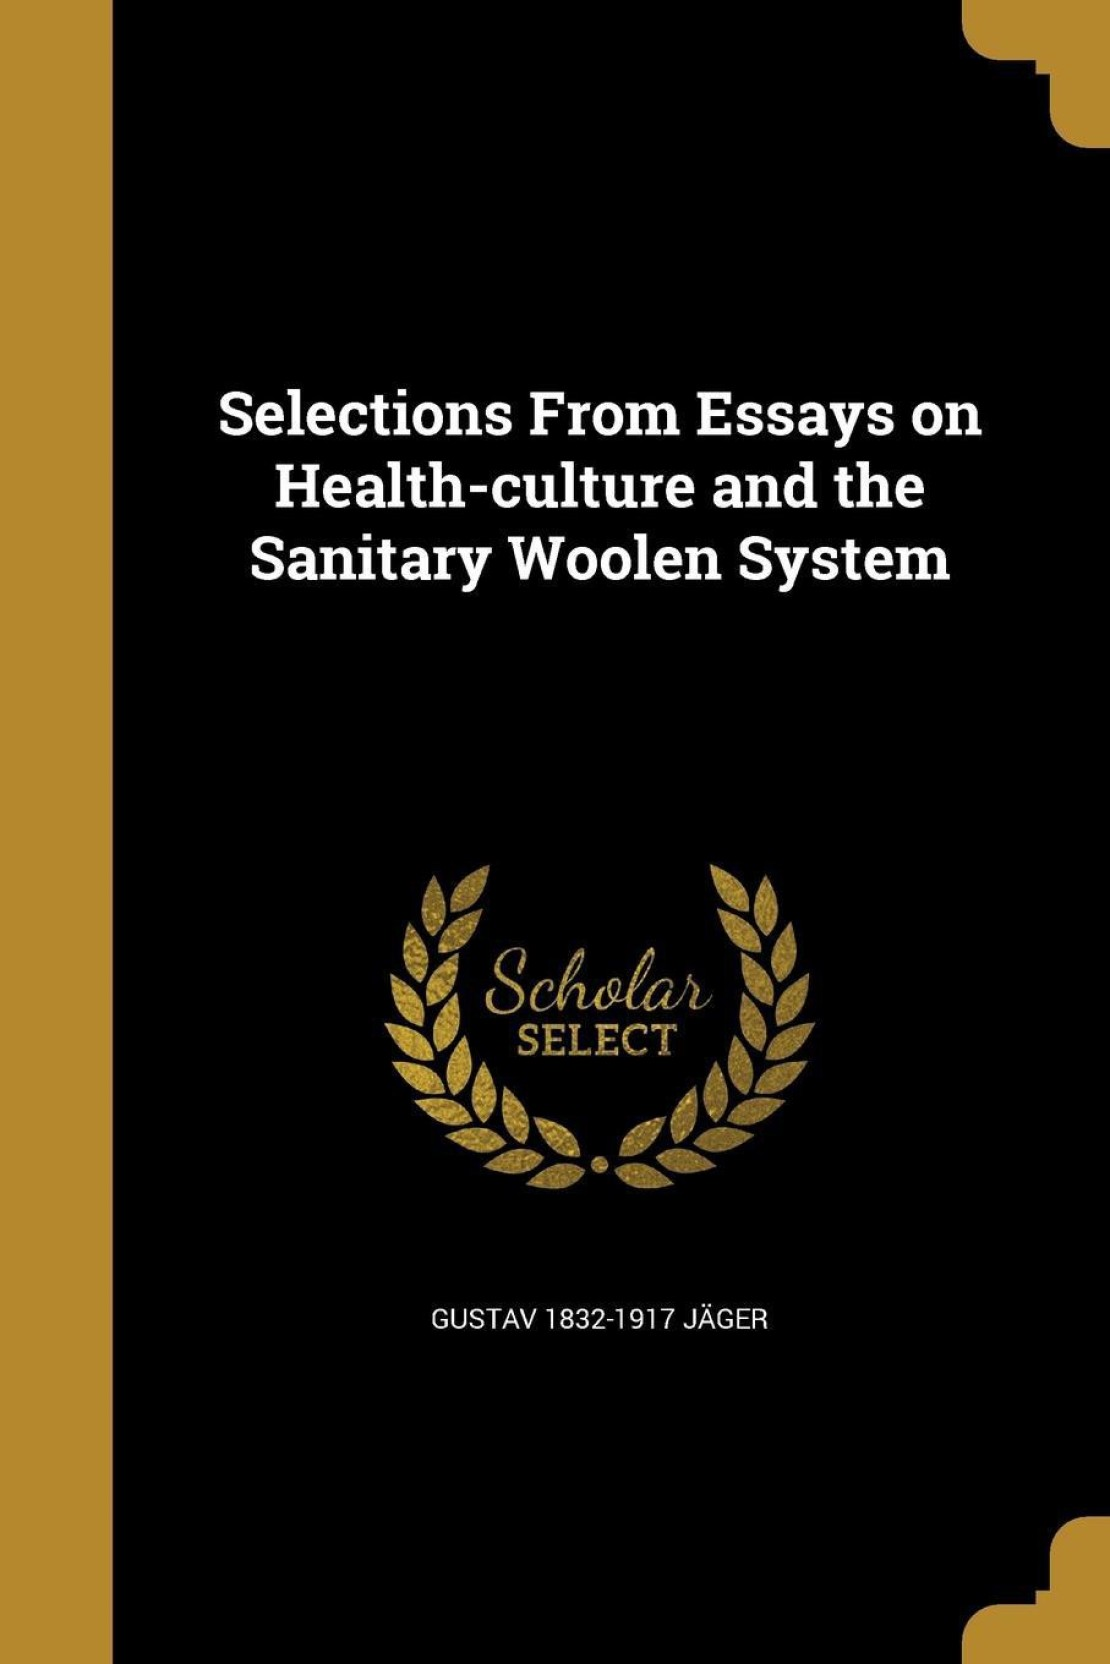 selections from essays on healthculture and the sanitary woolen  selections from essays on healthculture and the sanitary woolen system  english paperback gustav  jger